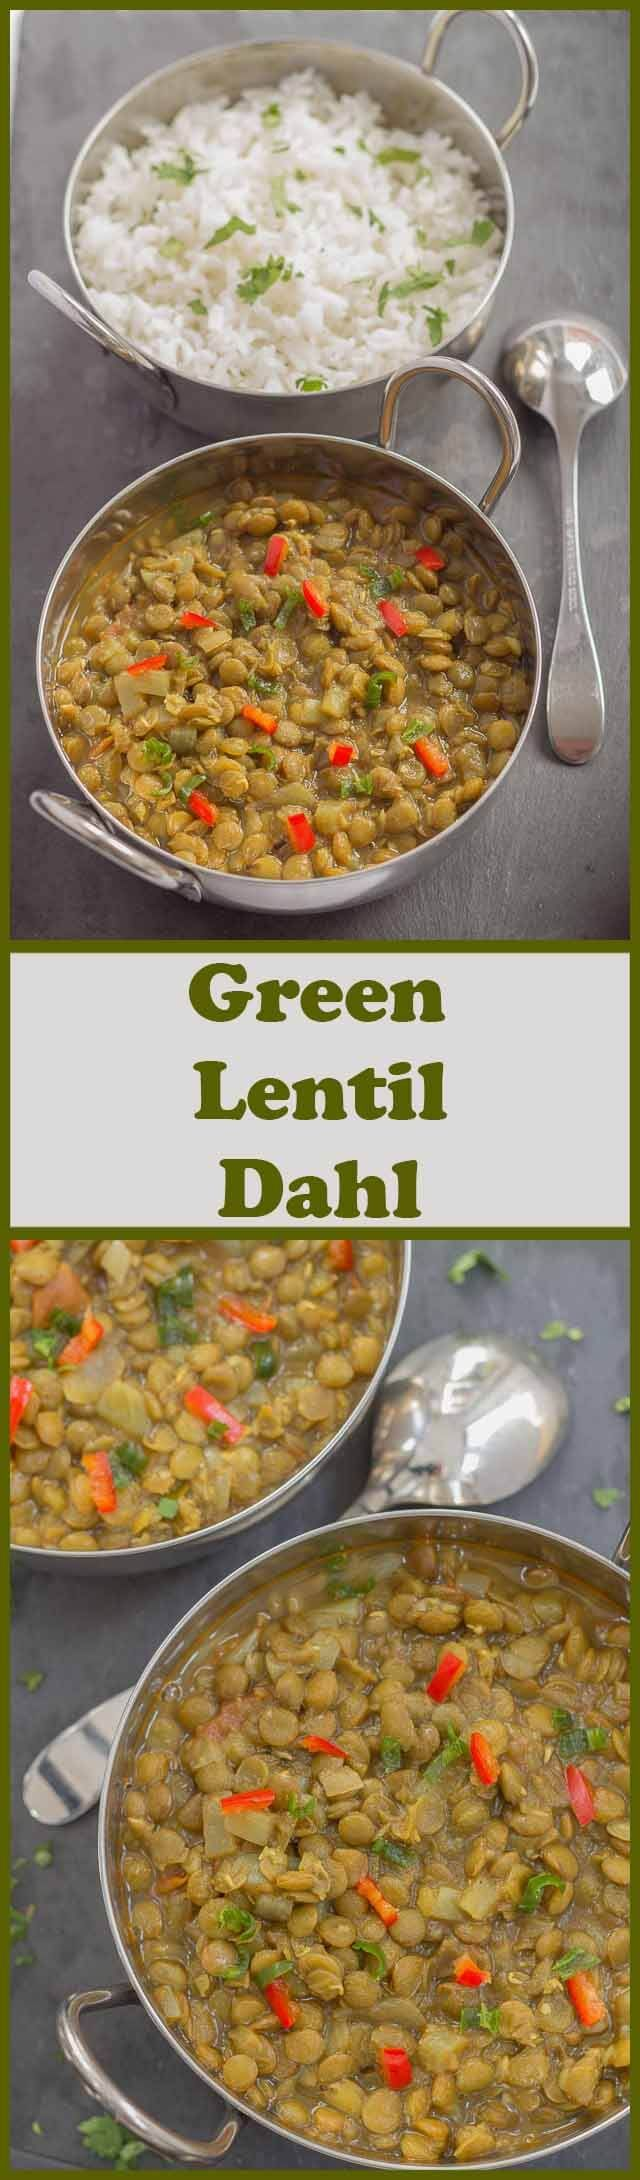 This vegan green lentil dahl is simply delicious, mouth-watering and perfect as a meat free dinner. Filling and with just the right amount of chilli spice, even meat eaters will find this agreeable too!